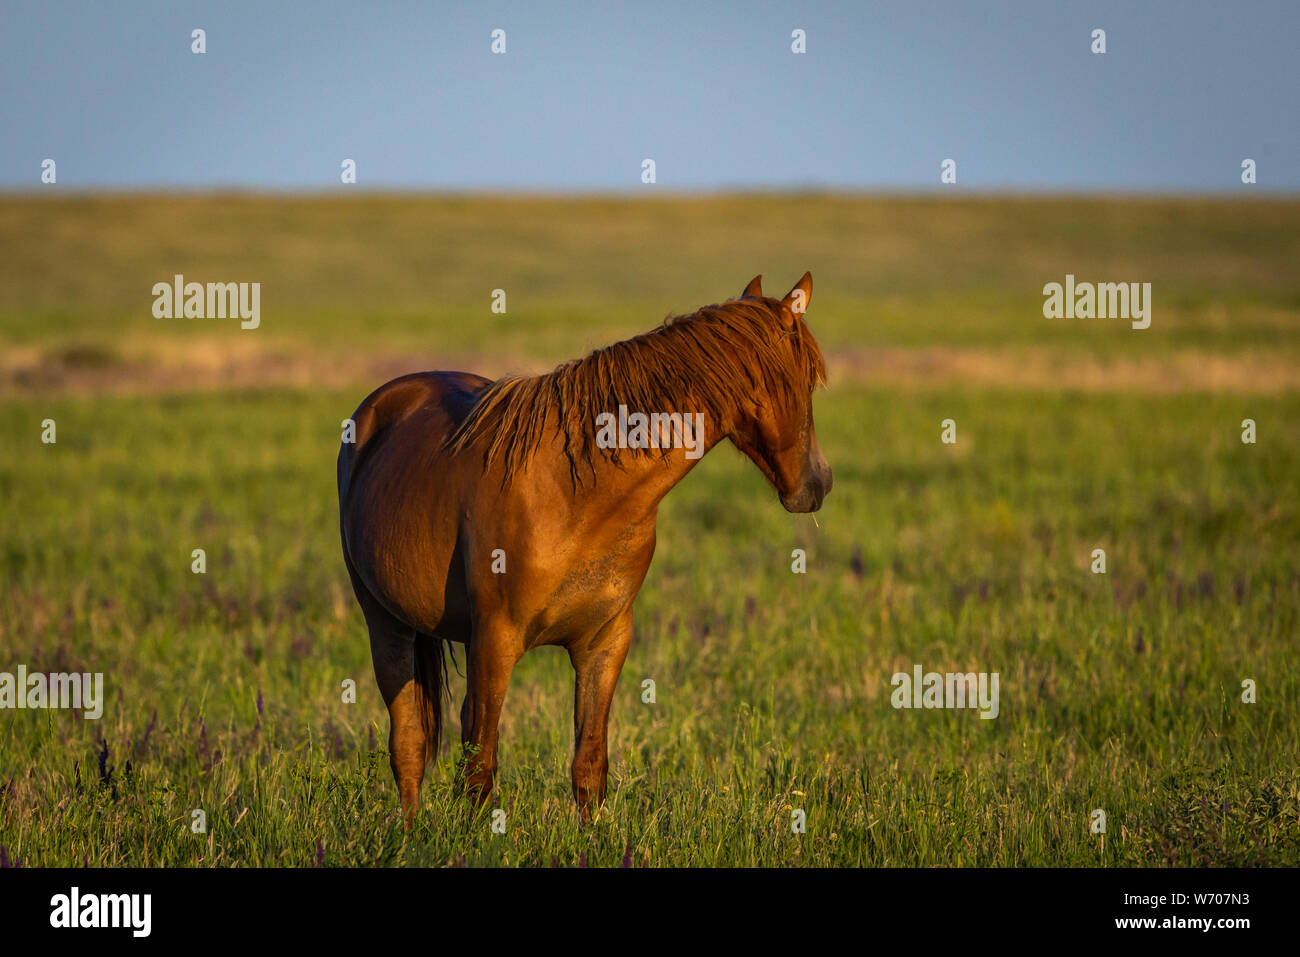 Portrait of wild horse in wildlife. Wild horses in nature Stock Photo